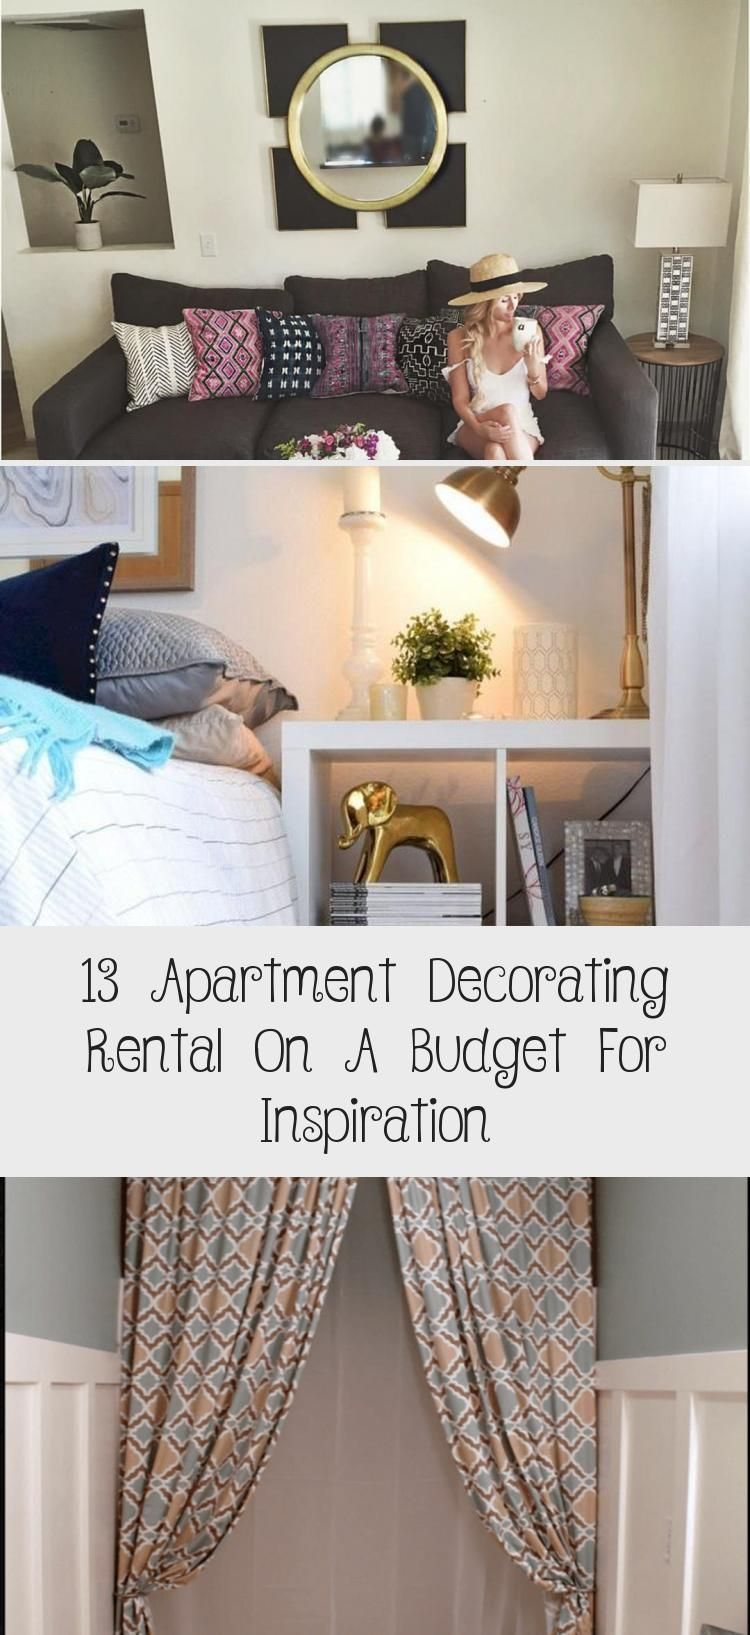 13 Apartment Decorating Rental On A Budget For Inspiration  Decorapartment